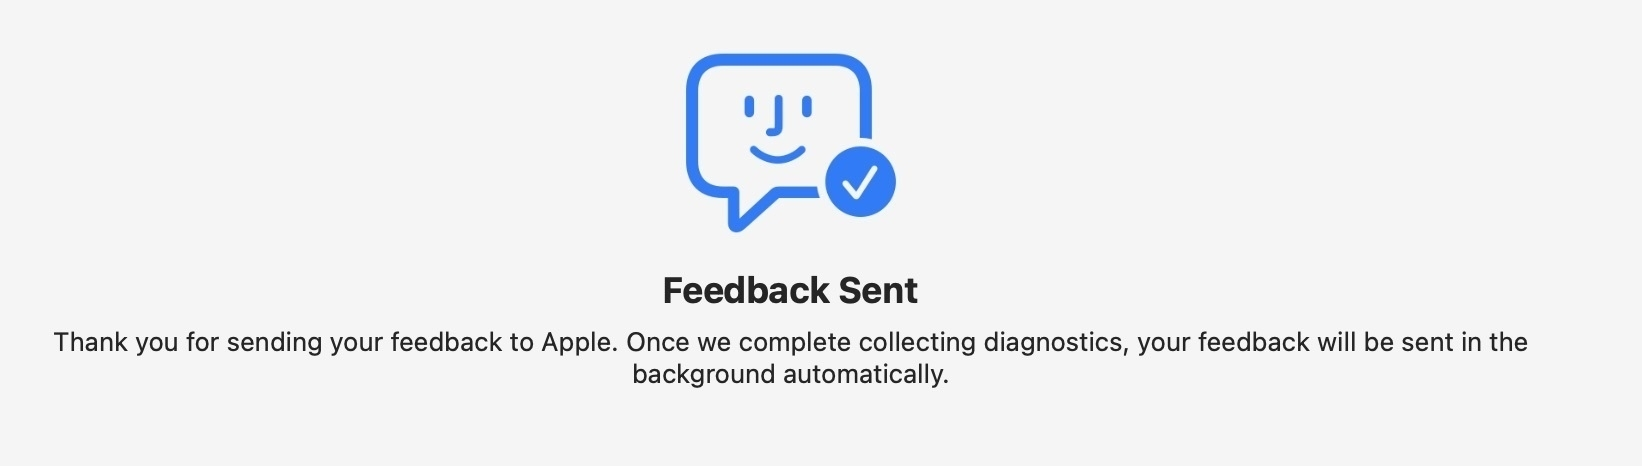 """Screenshot of """"Feedback Sent"""" confirmation indicating it will be submitted when the system diagnostics are complete."""